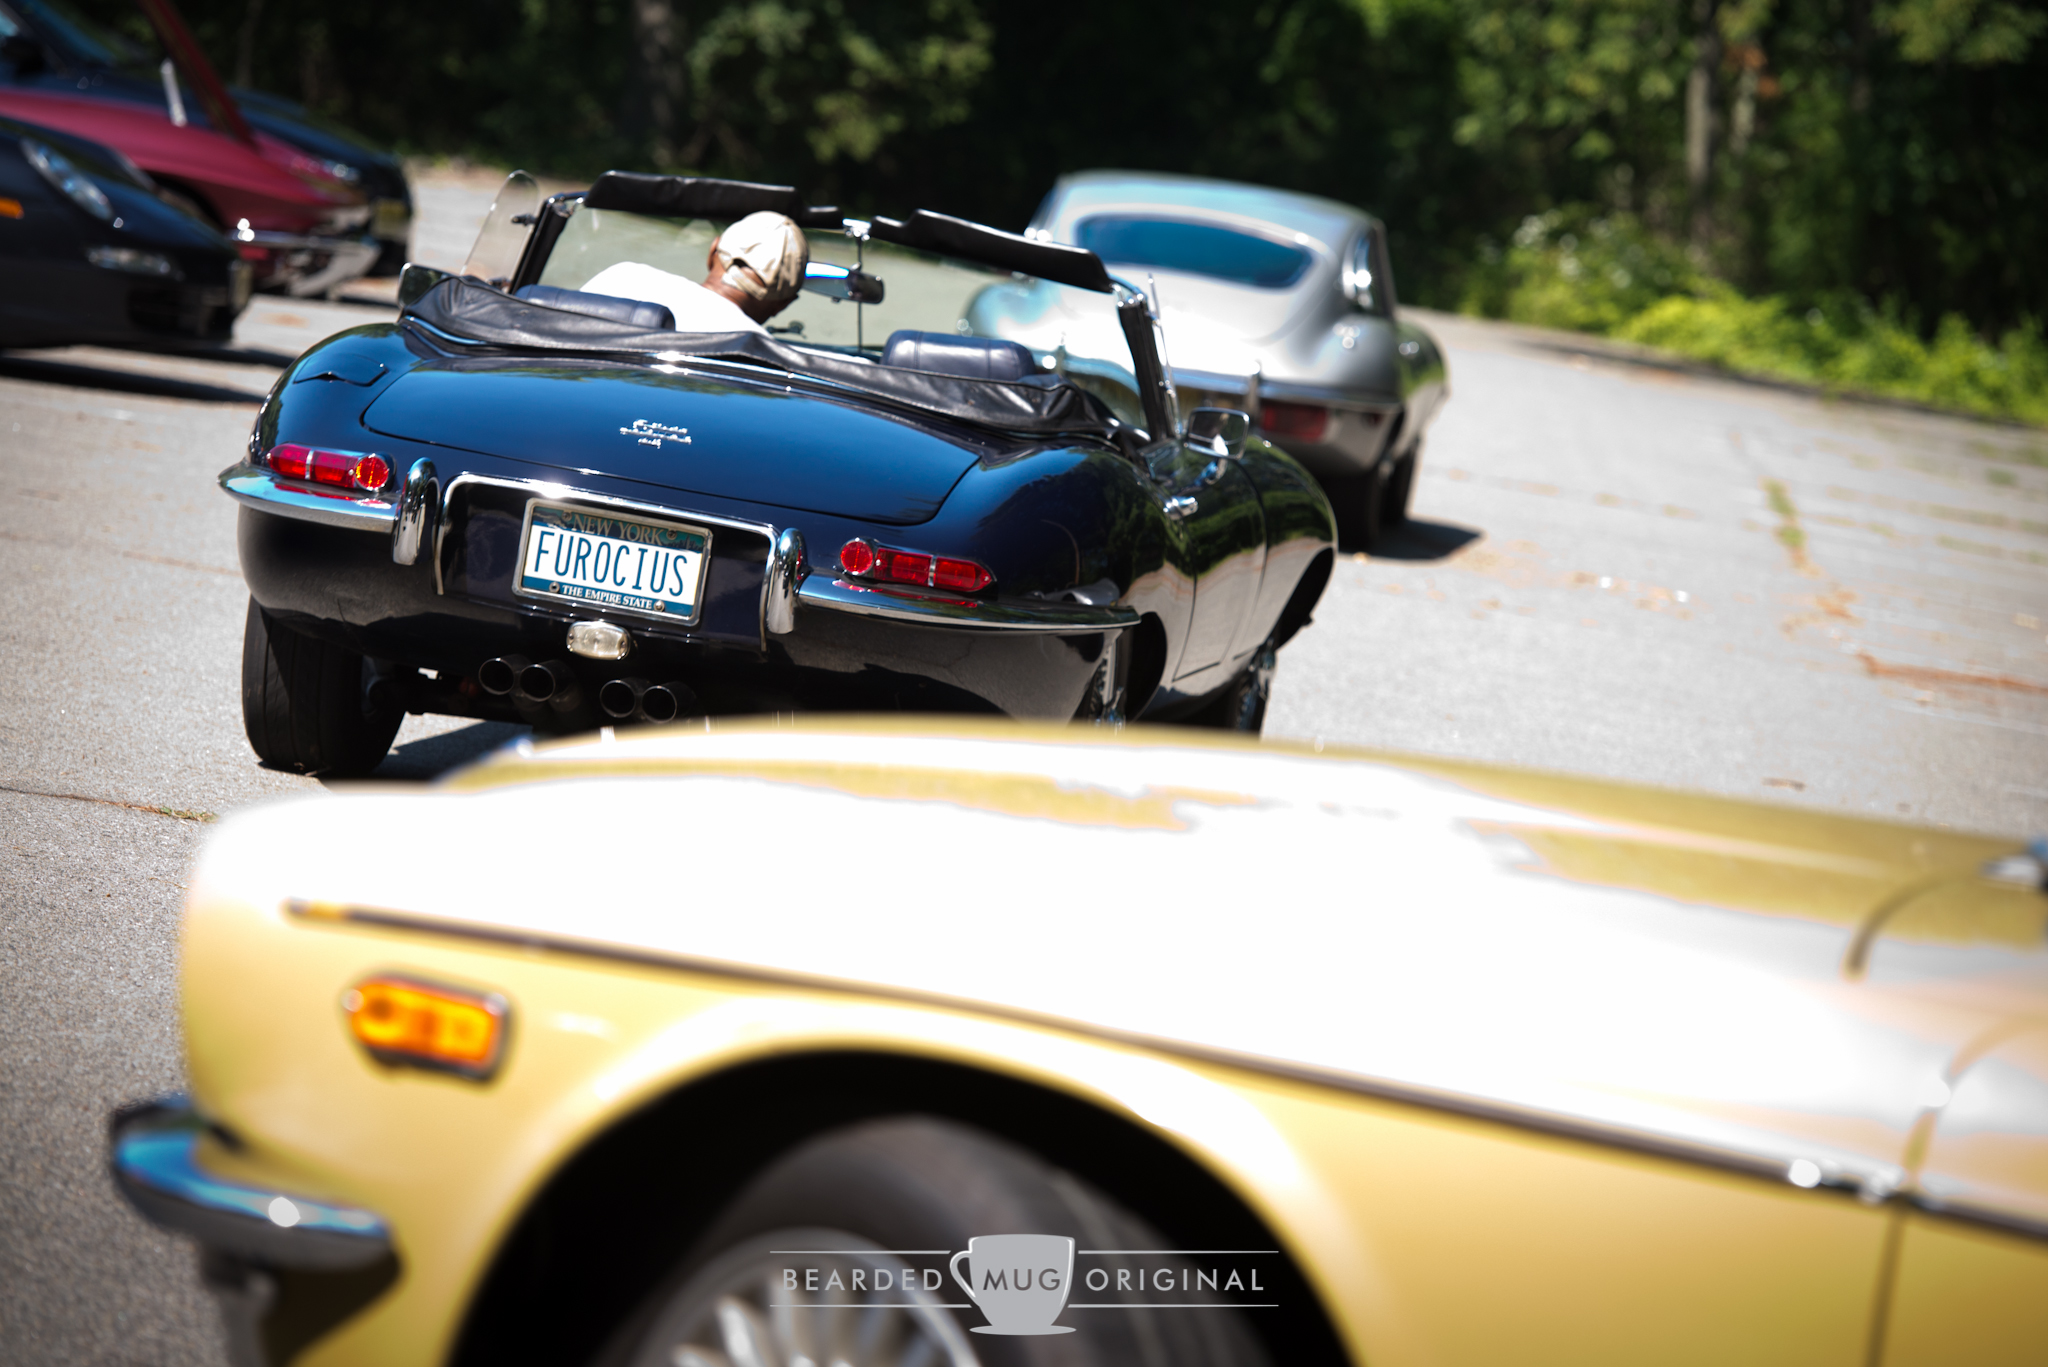 George can often times be seen cruising with other Jaguar owners, which makes for quite the coordinated sight to behold.